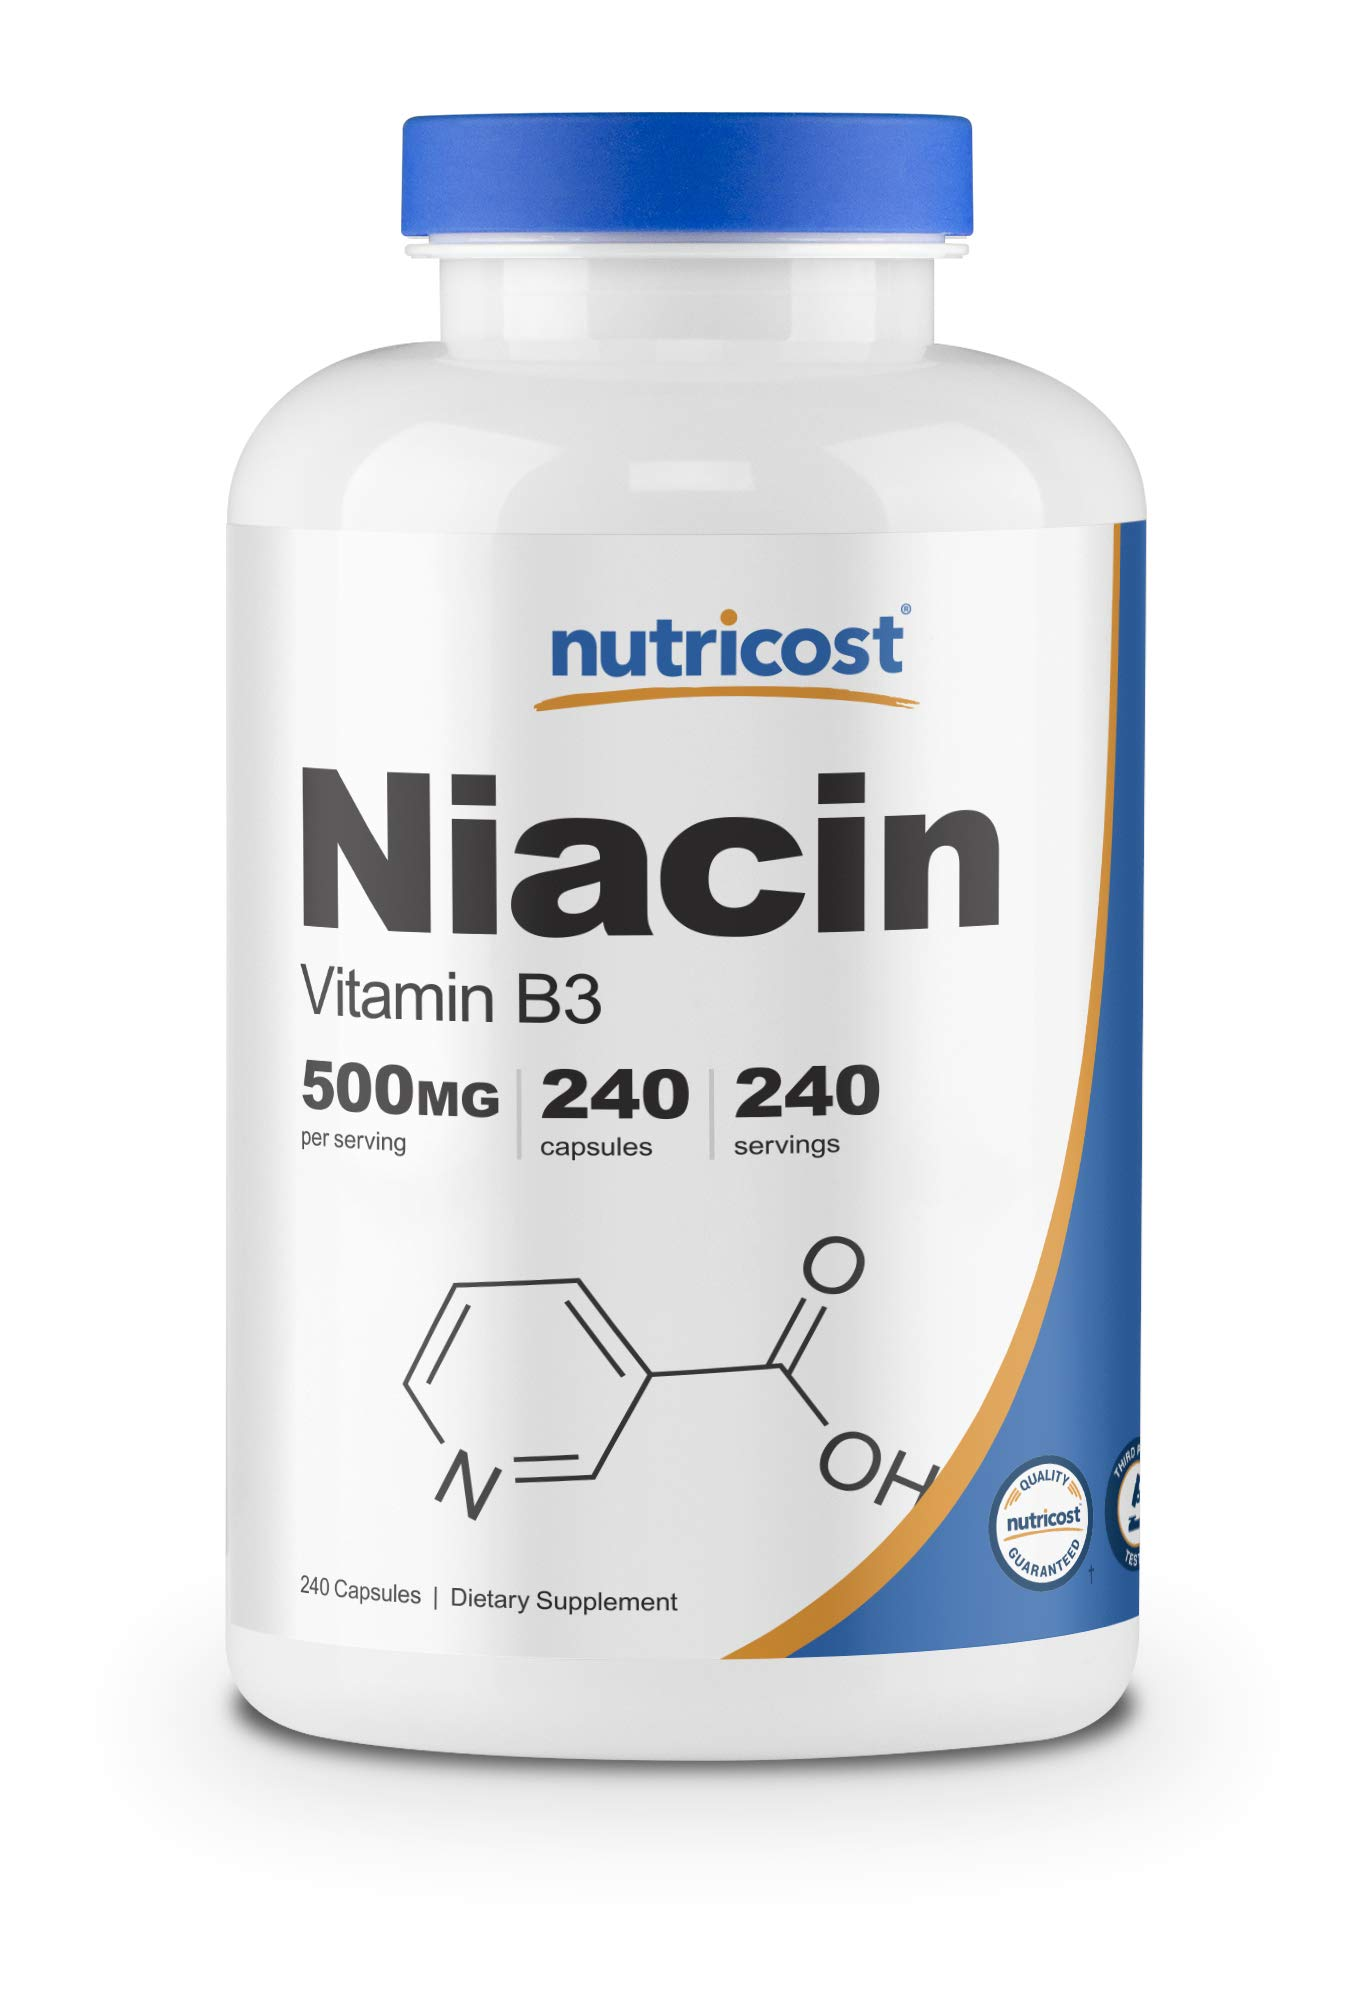 Nutricost Niacin (Vitamin B3) 500mg, 240 Capsules - with Flushing, Non-GMO, Gluten Free